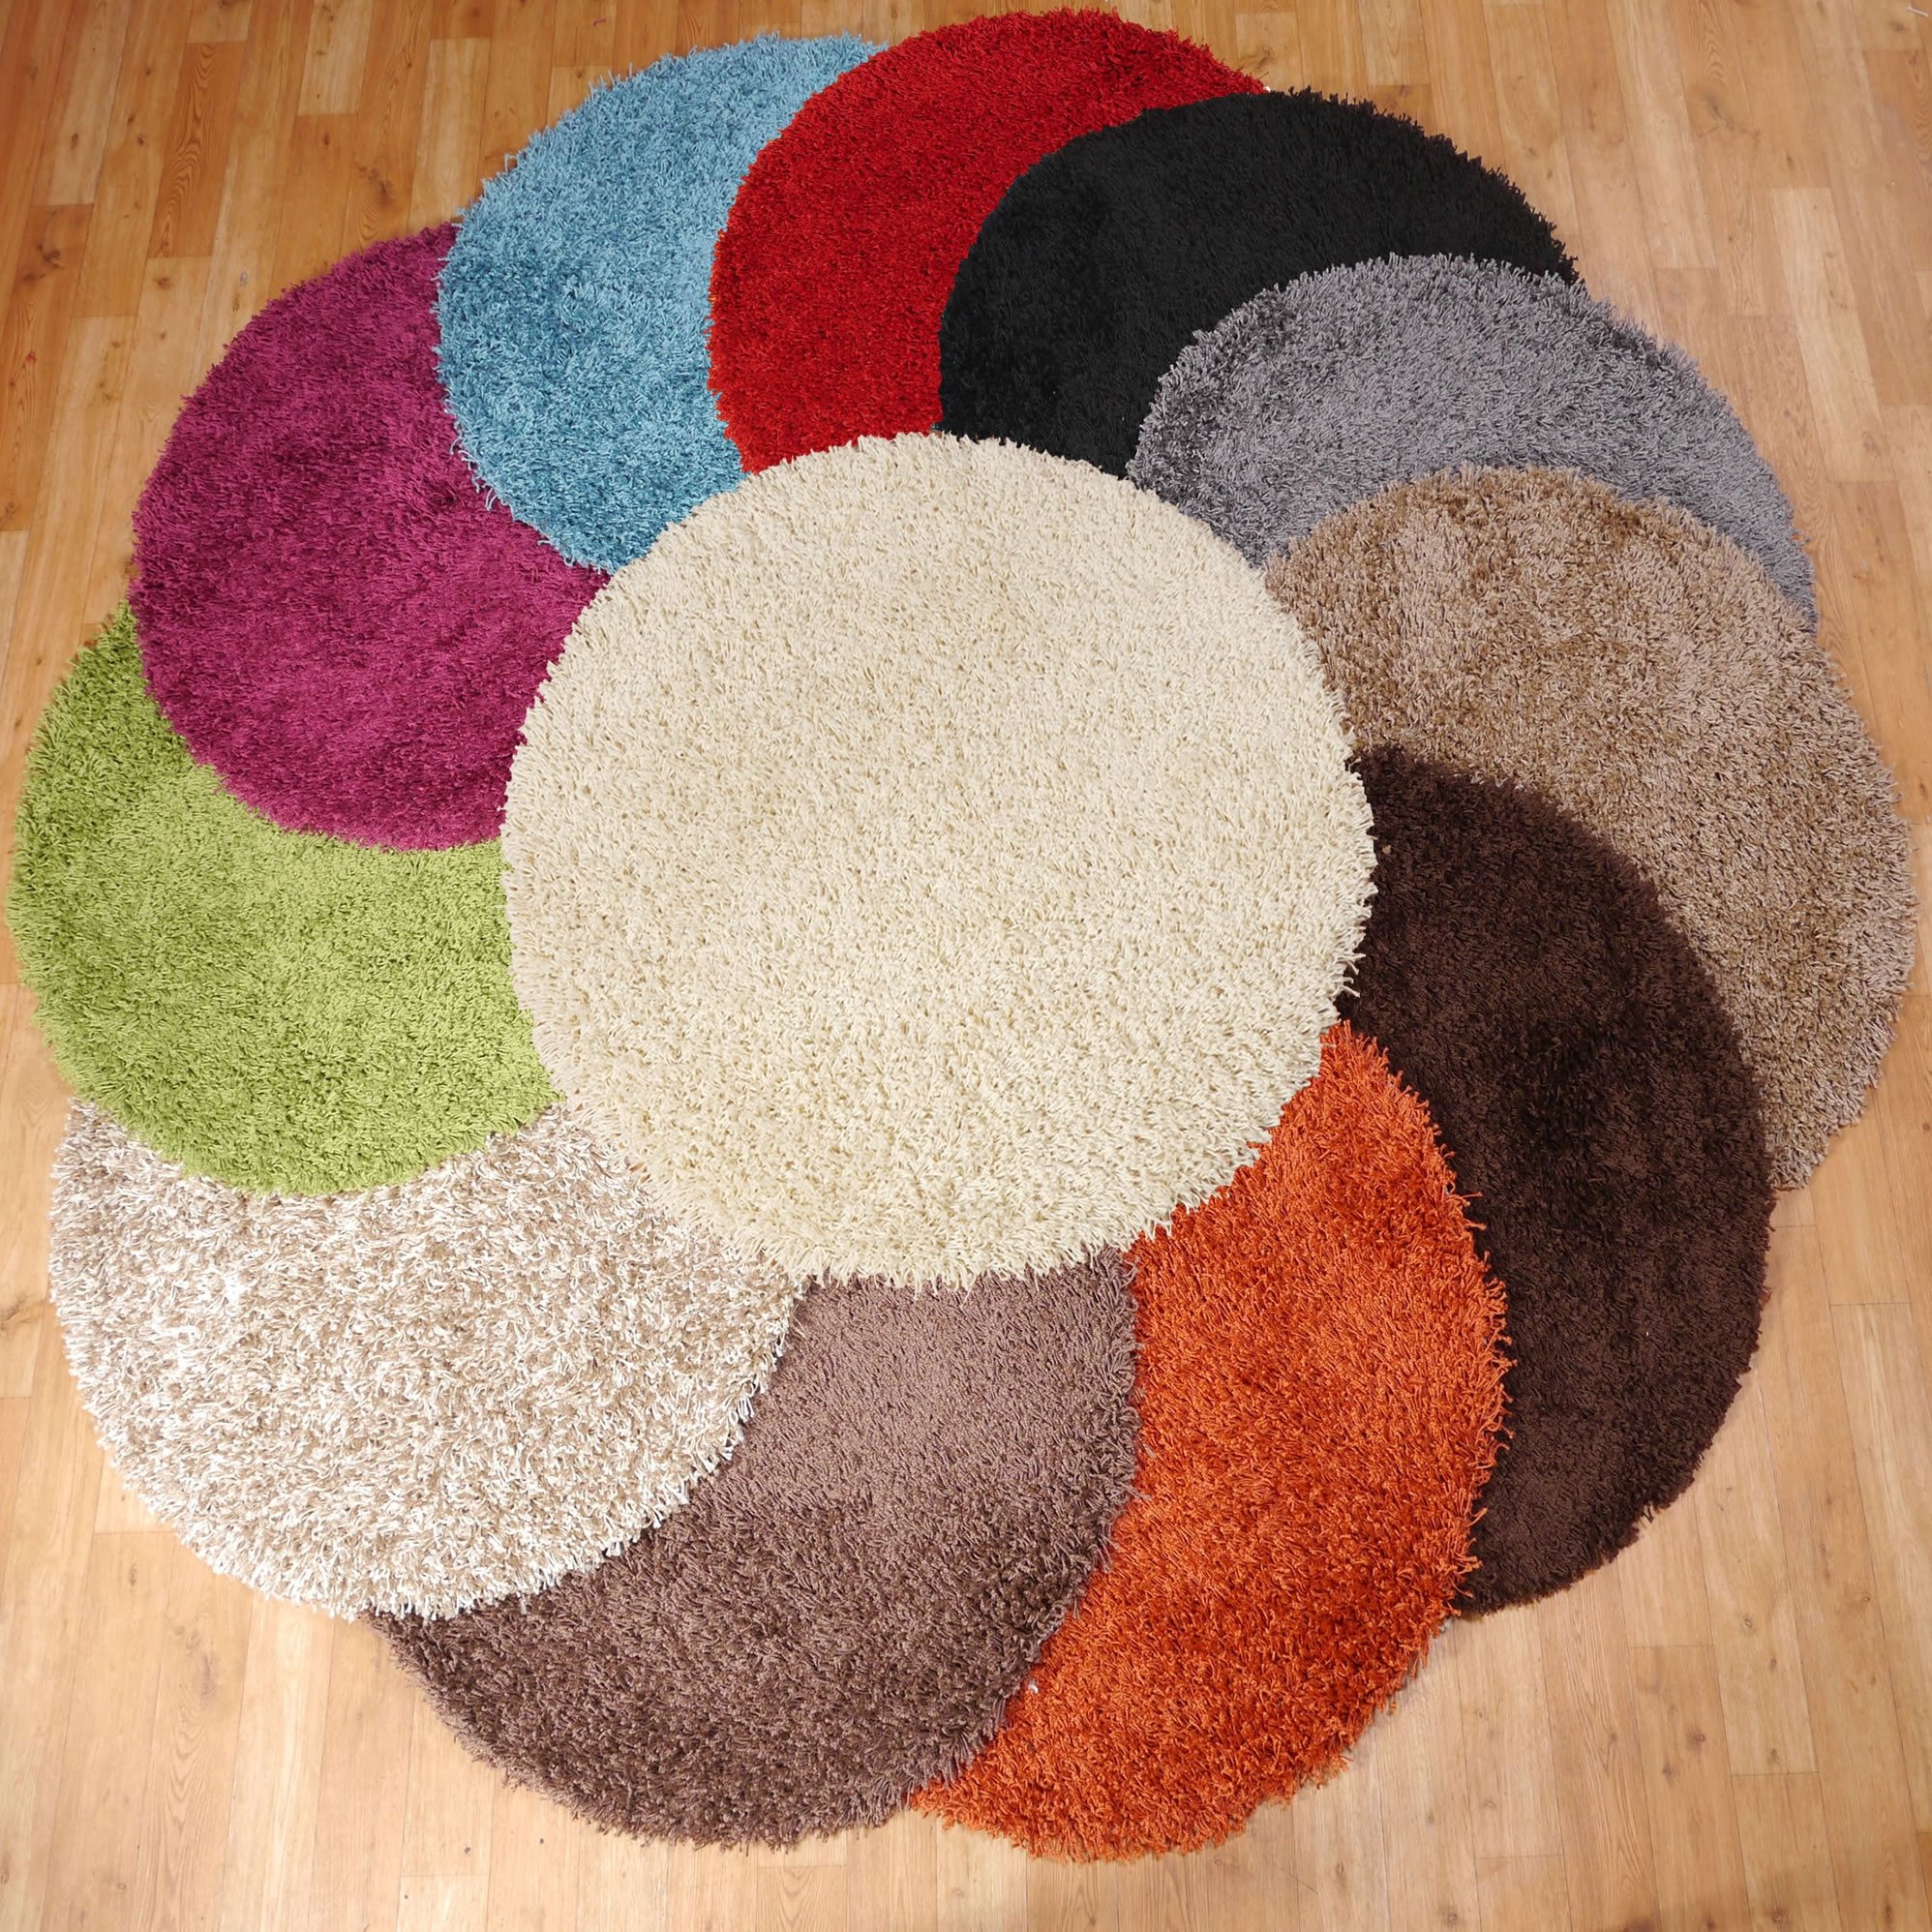 The Retro Look Of A Circular Rug Under A Round Coffee Table Its With Regard To Circular Wool Rugs (Image 15 of 15)